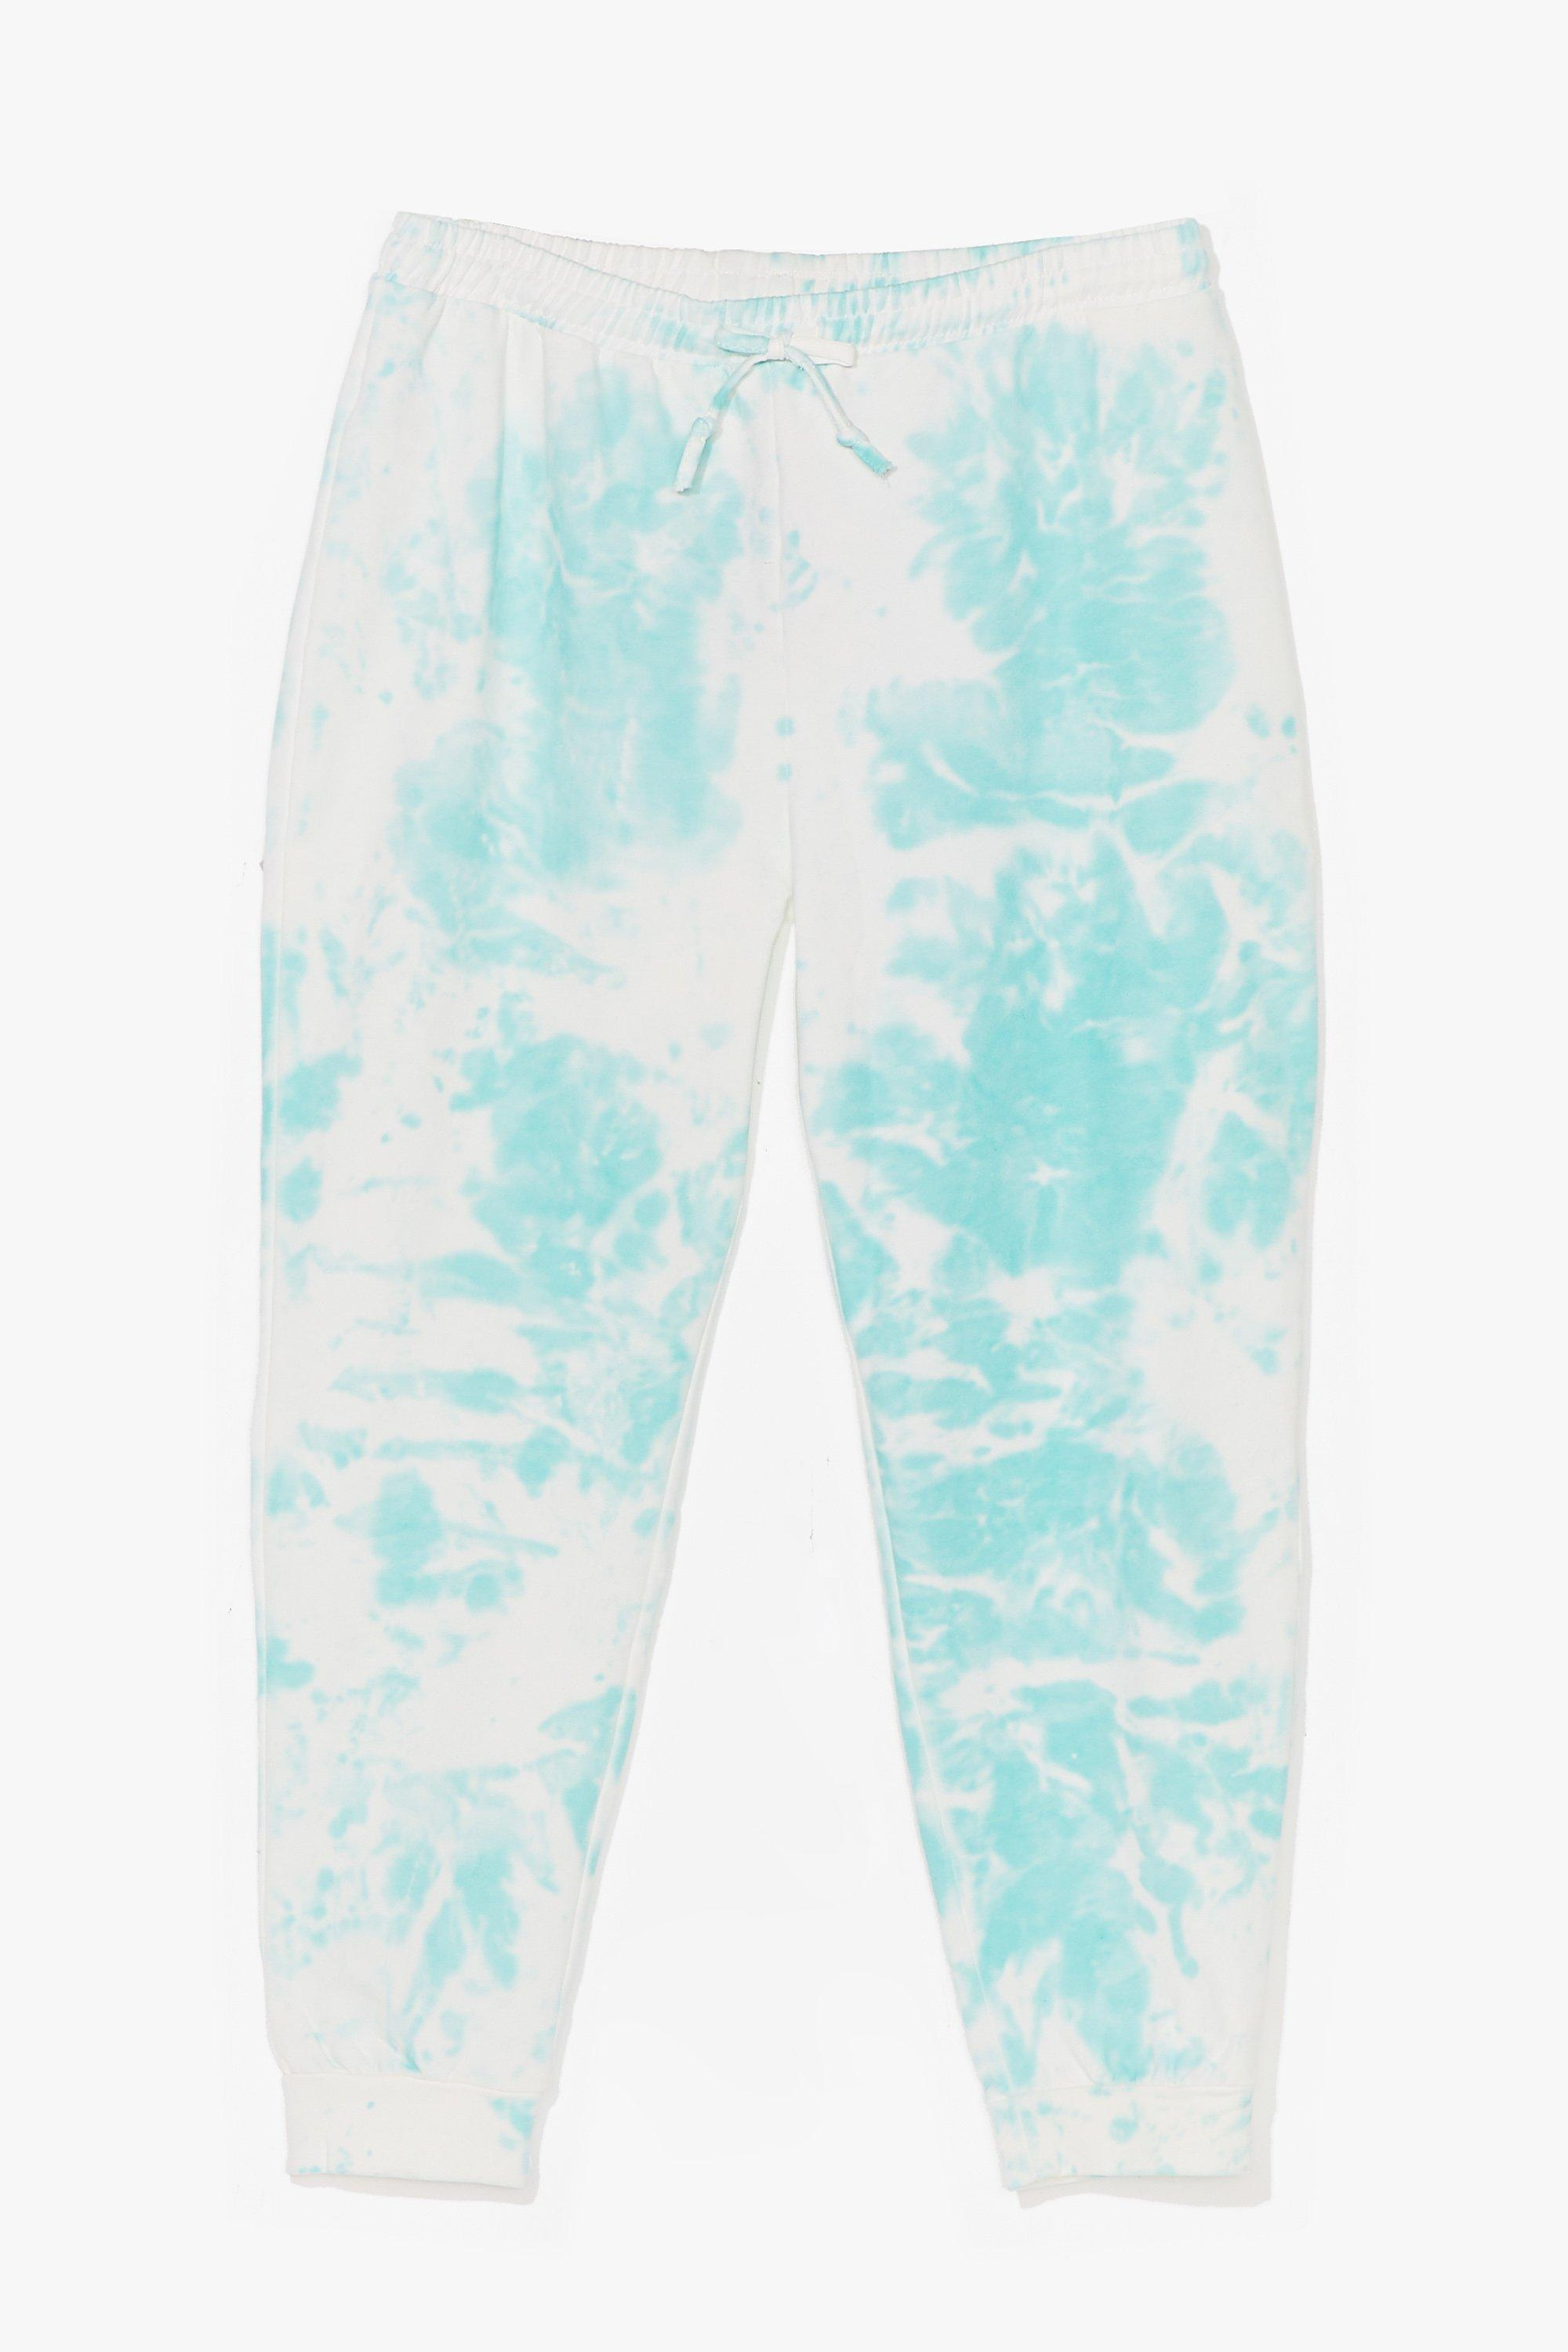 You're All Tie Want Plus Tie Dye Joggers 6